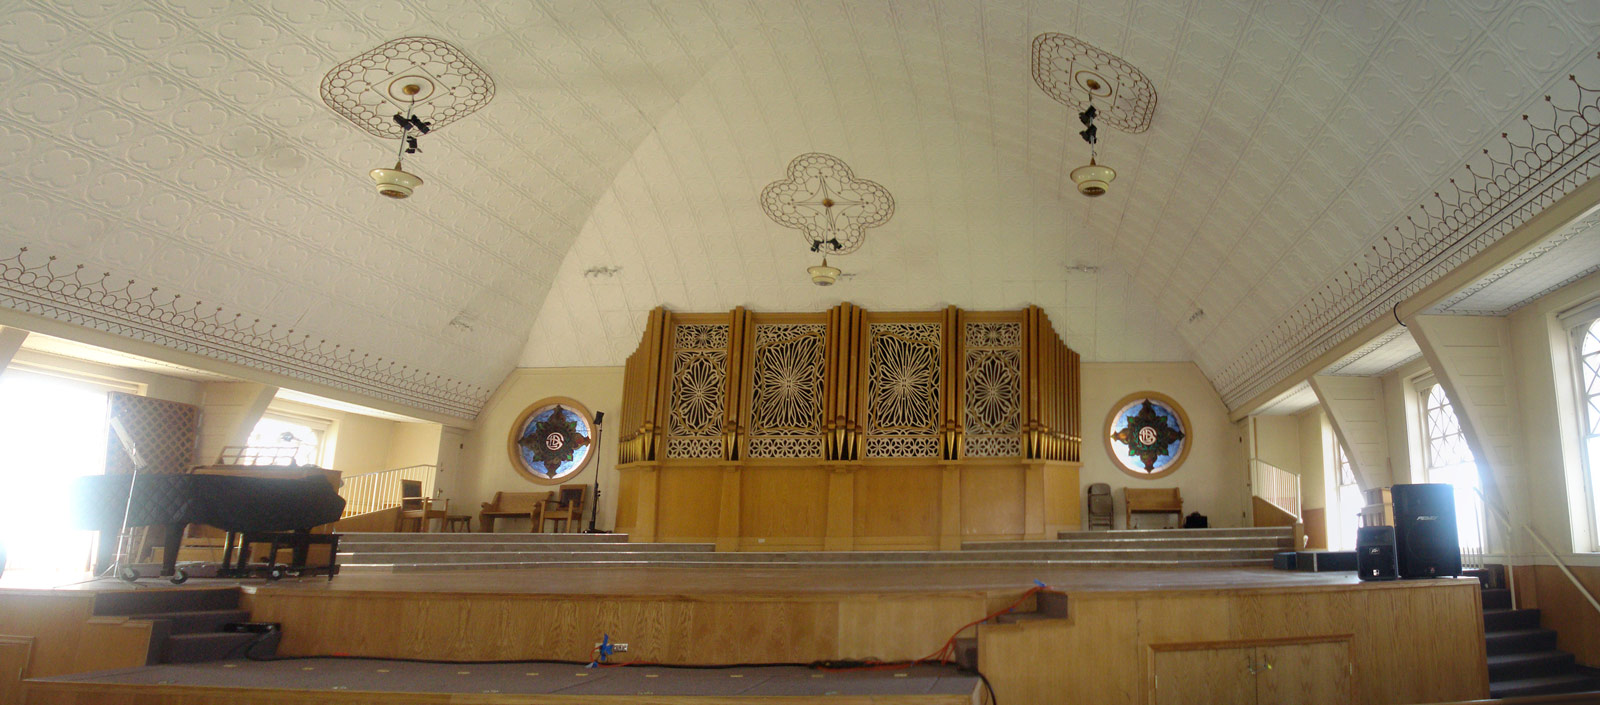 Rexburg Tabernacle Interior